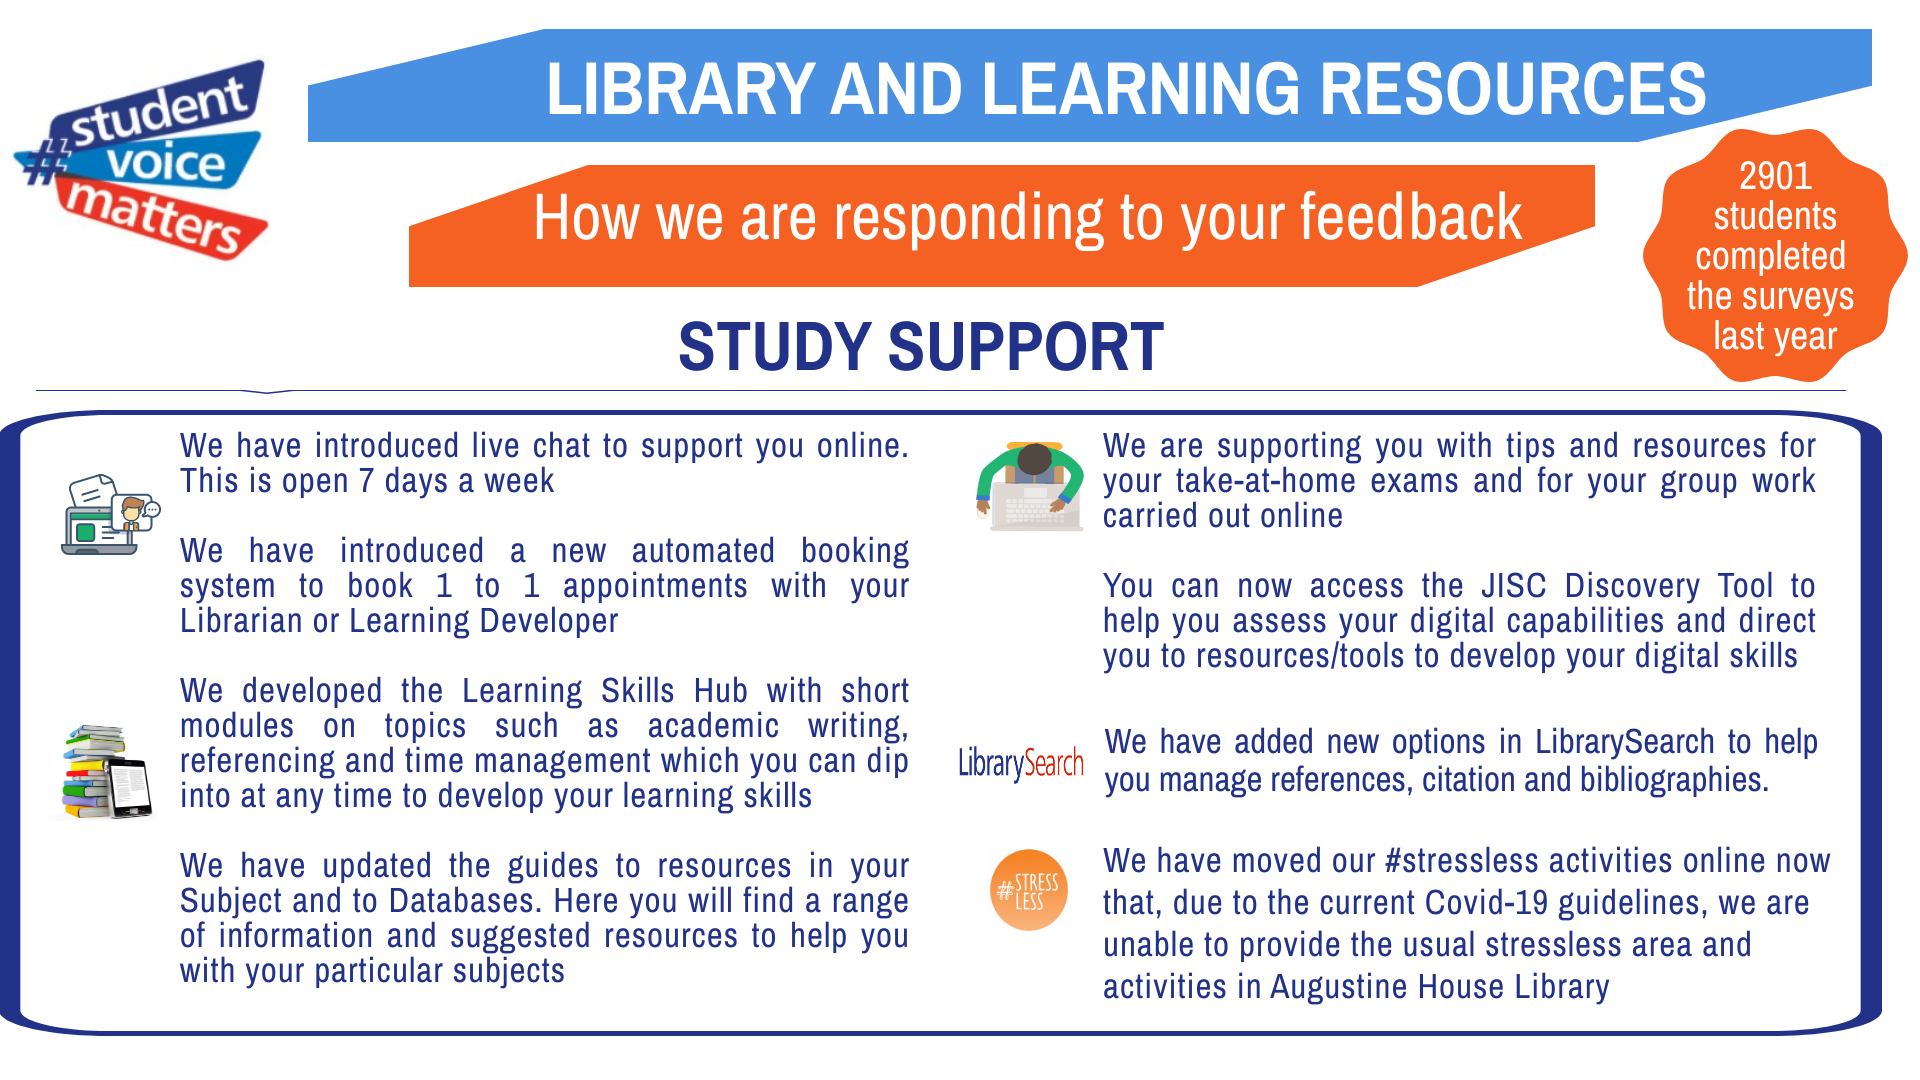 Improving your library… In an unprecedented year – Part 3: Study support